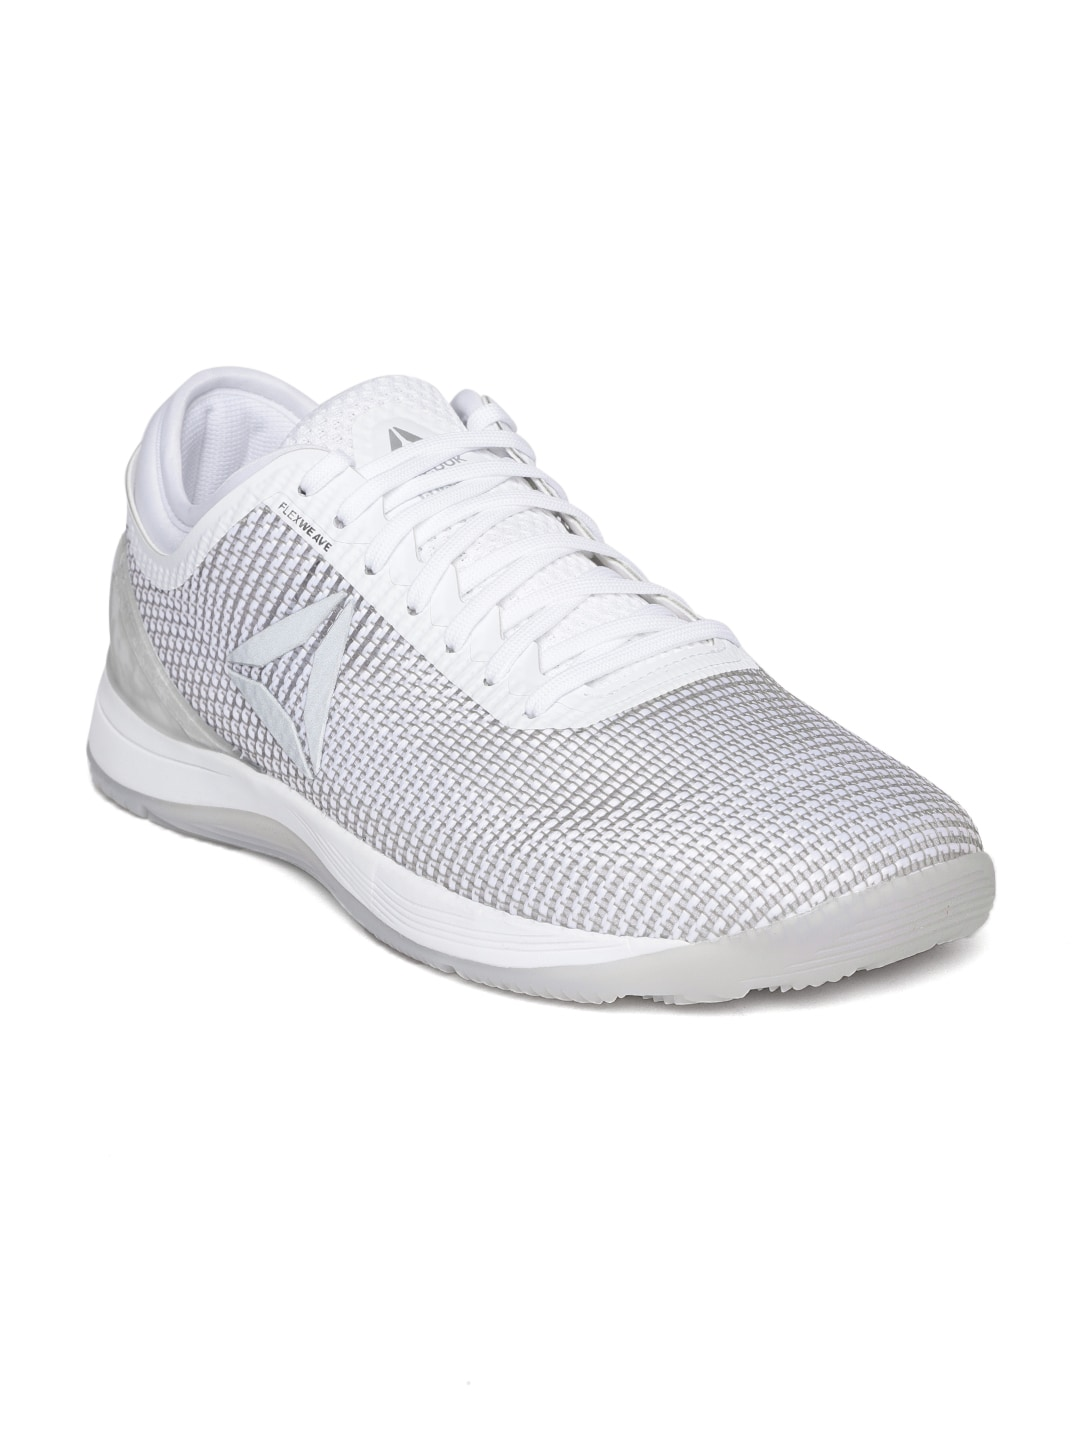 4f3895a2699 Mens Shoes Reebok - Buy Mens Shoes Reebok online in India